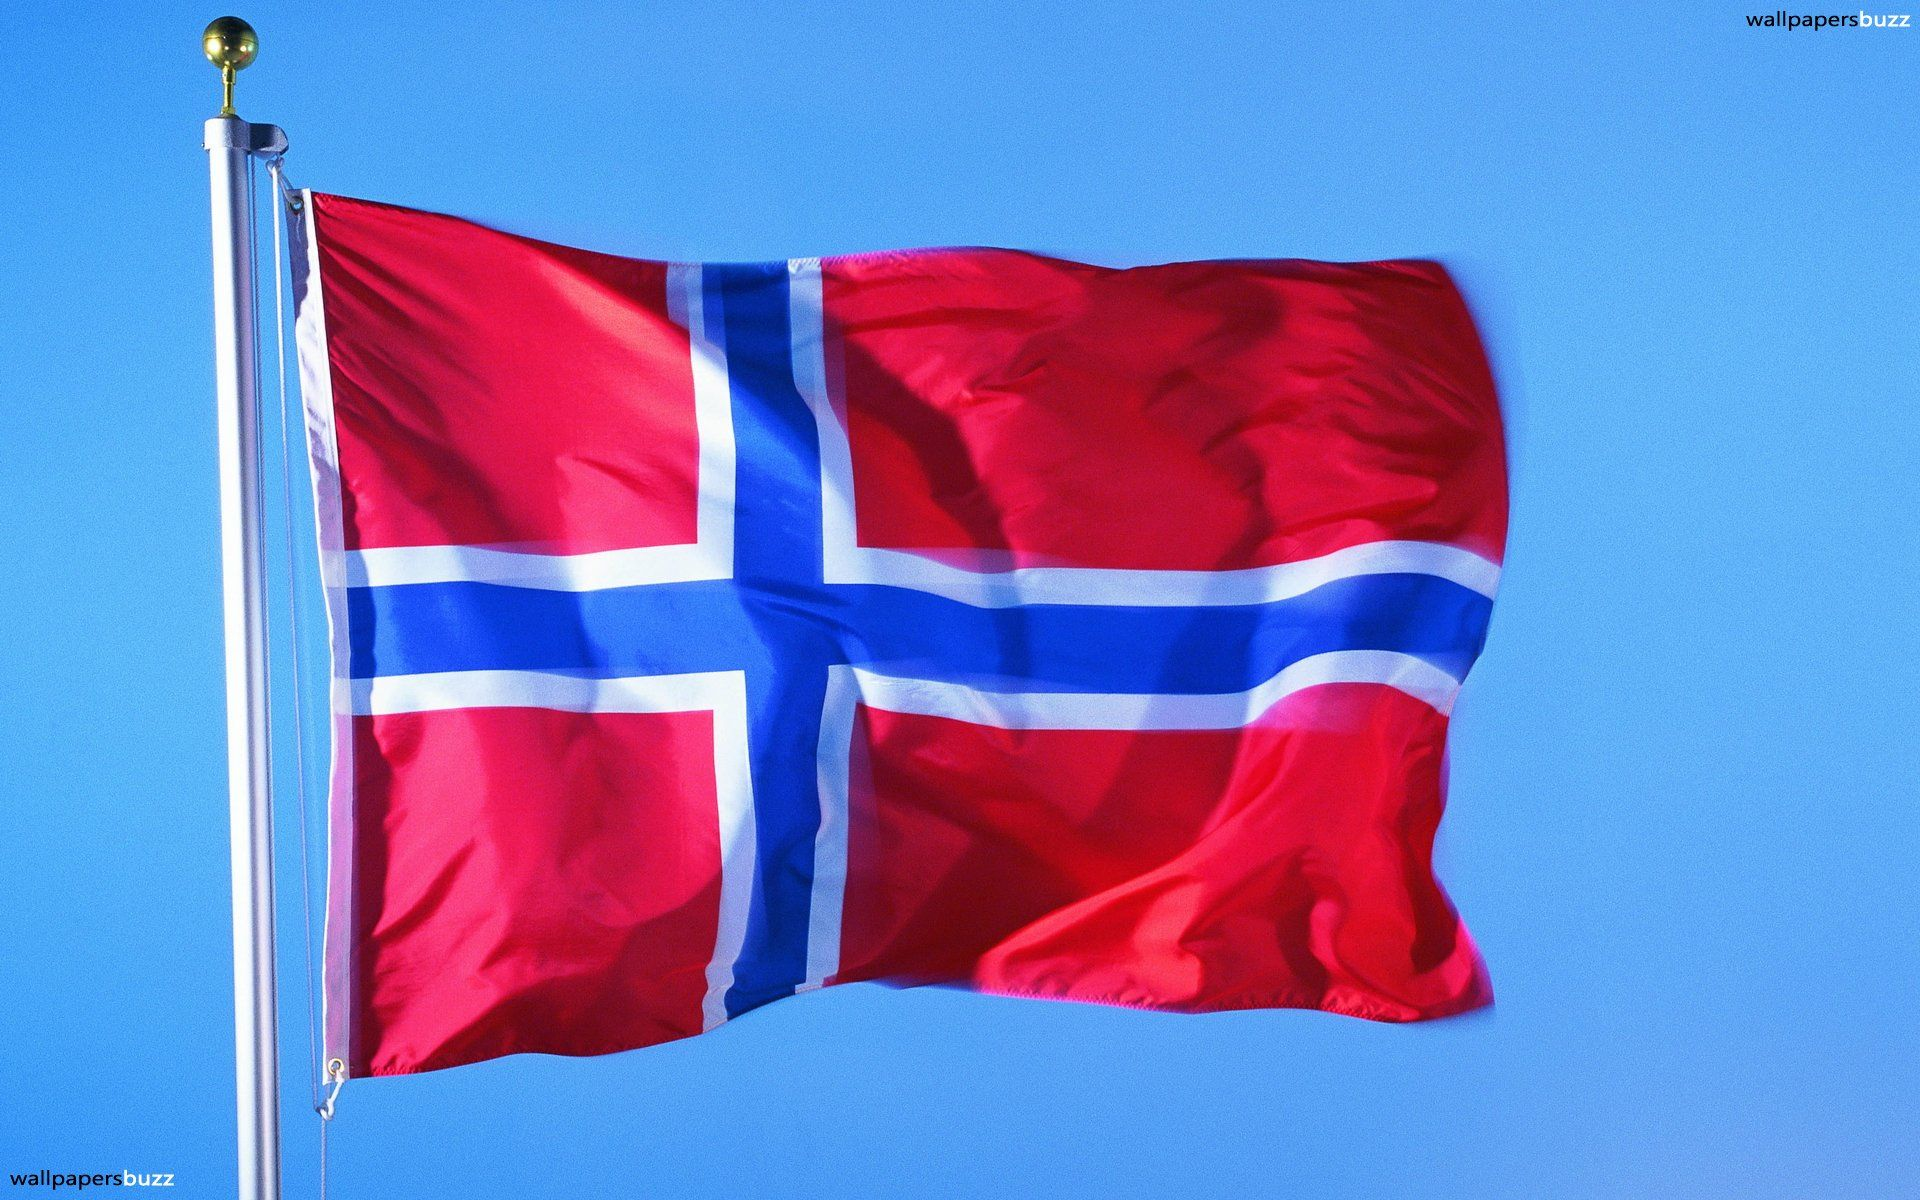 1920x1200 The flag of Norway HD Wallpaper